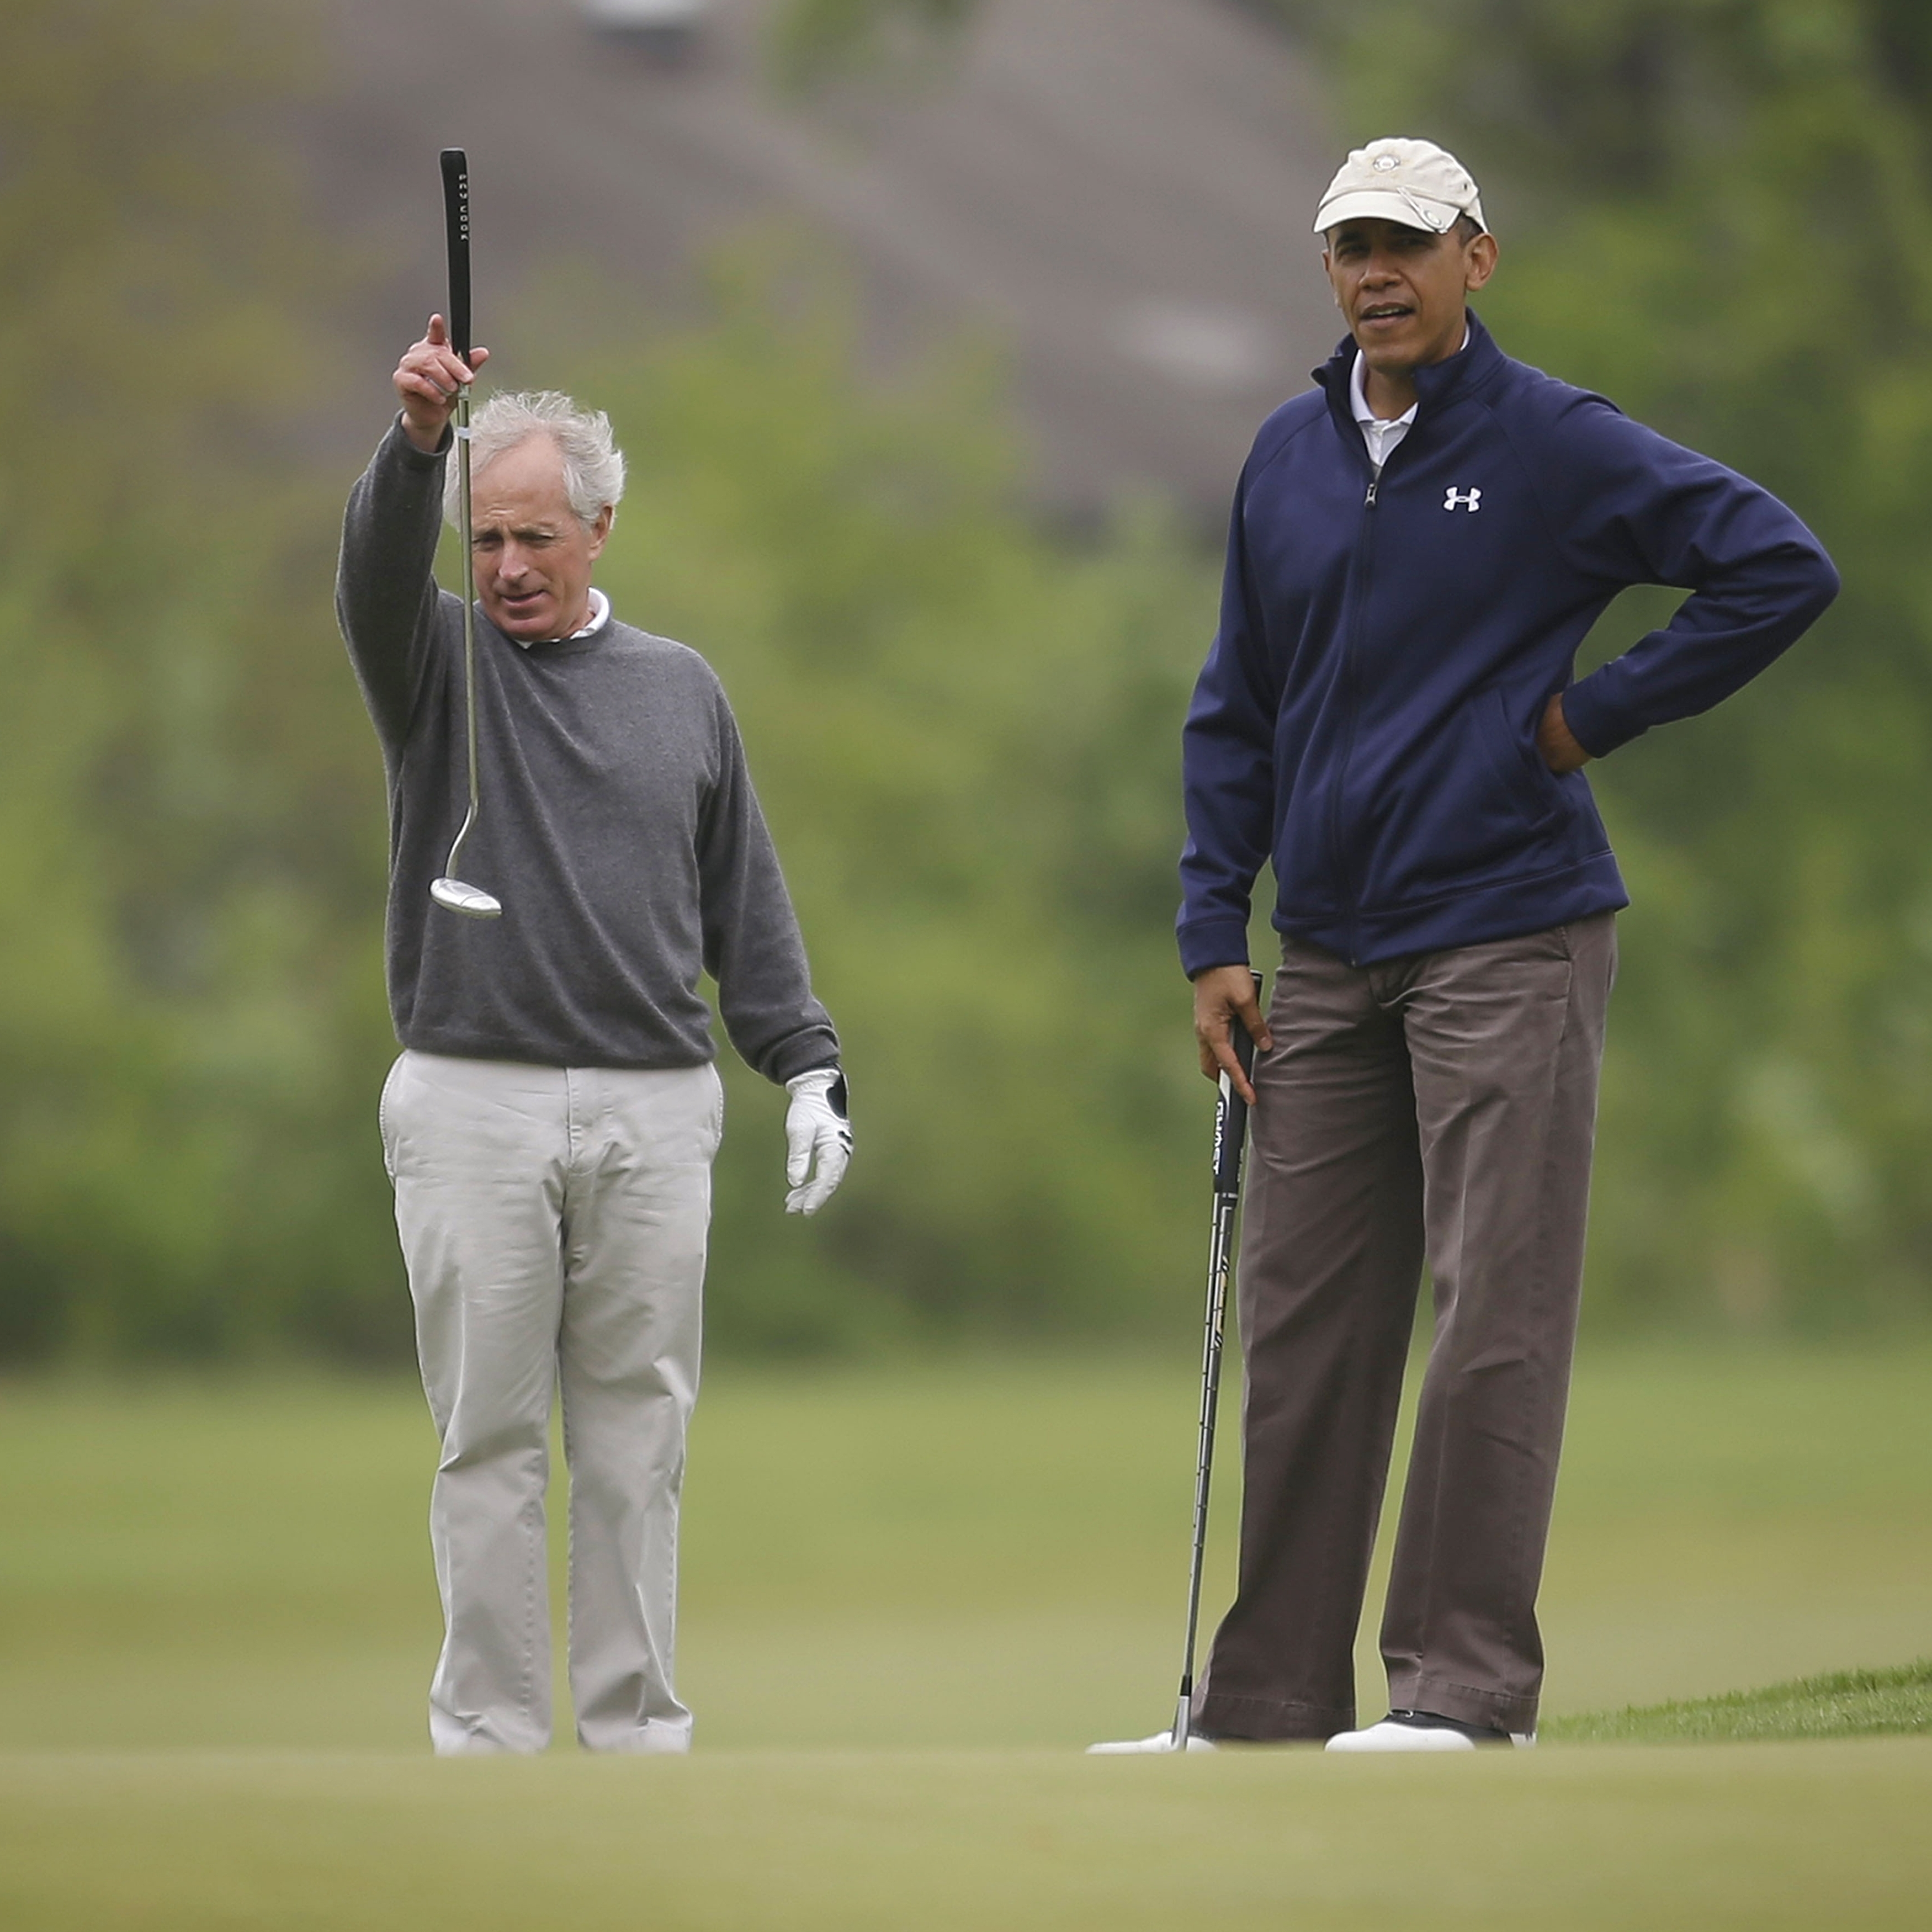 Bush Doesn't Fault Obama For Playing Golf